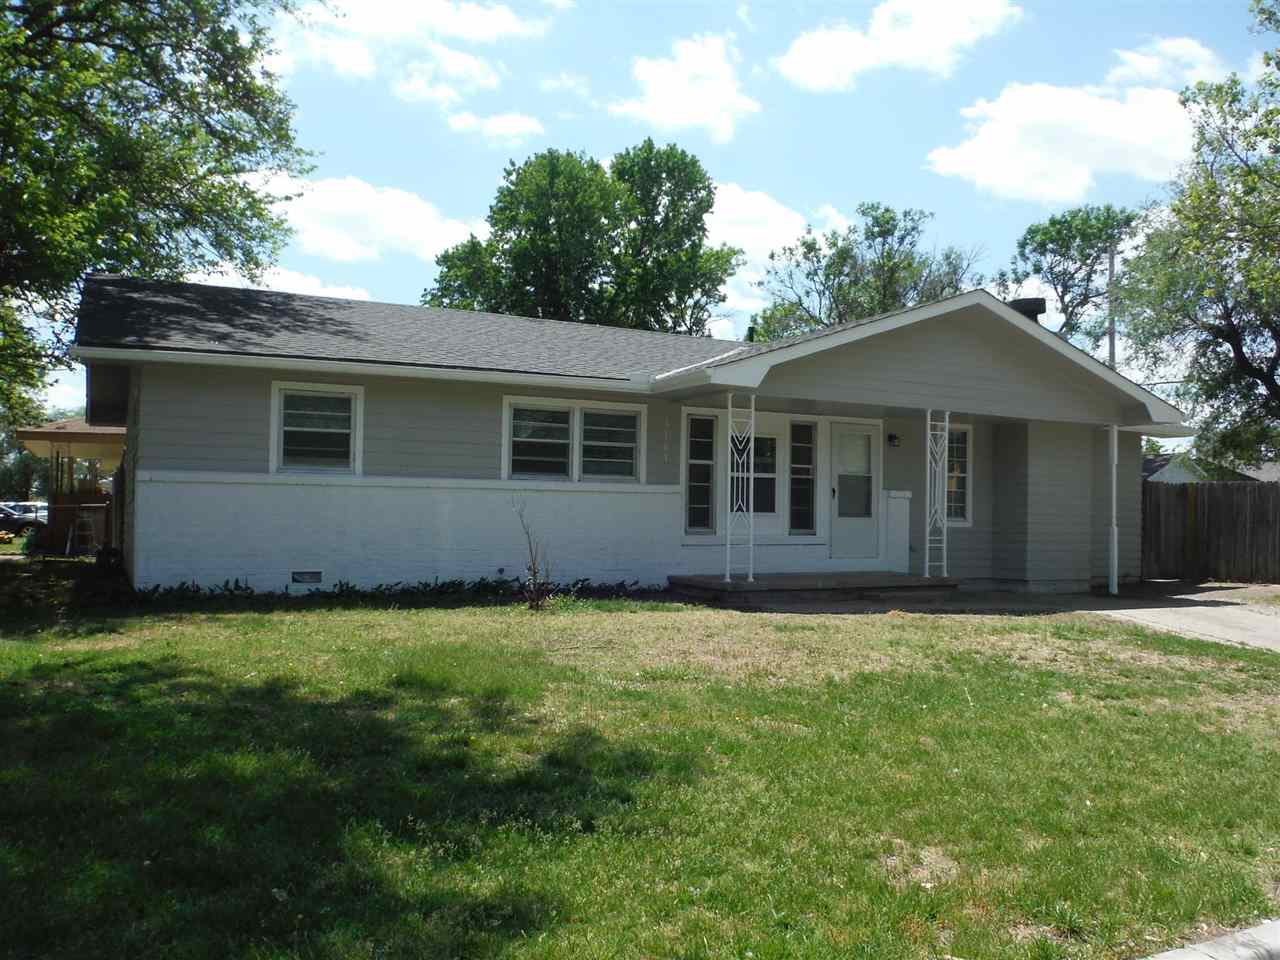 4 bedroom remodeled home with lots of room. Complete new kitchen including new granite counters and